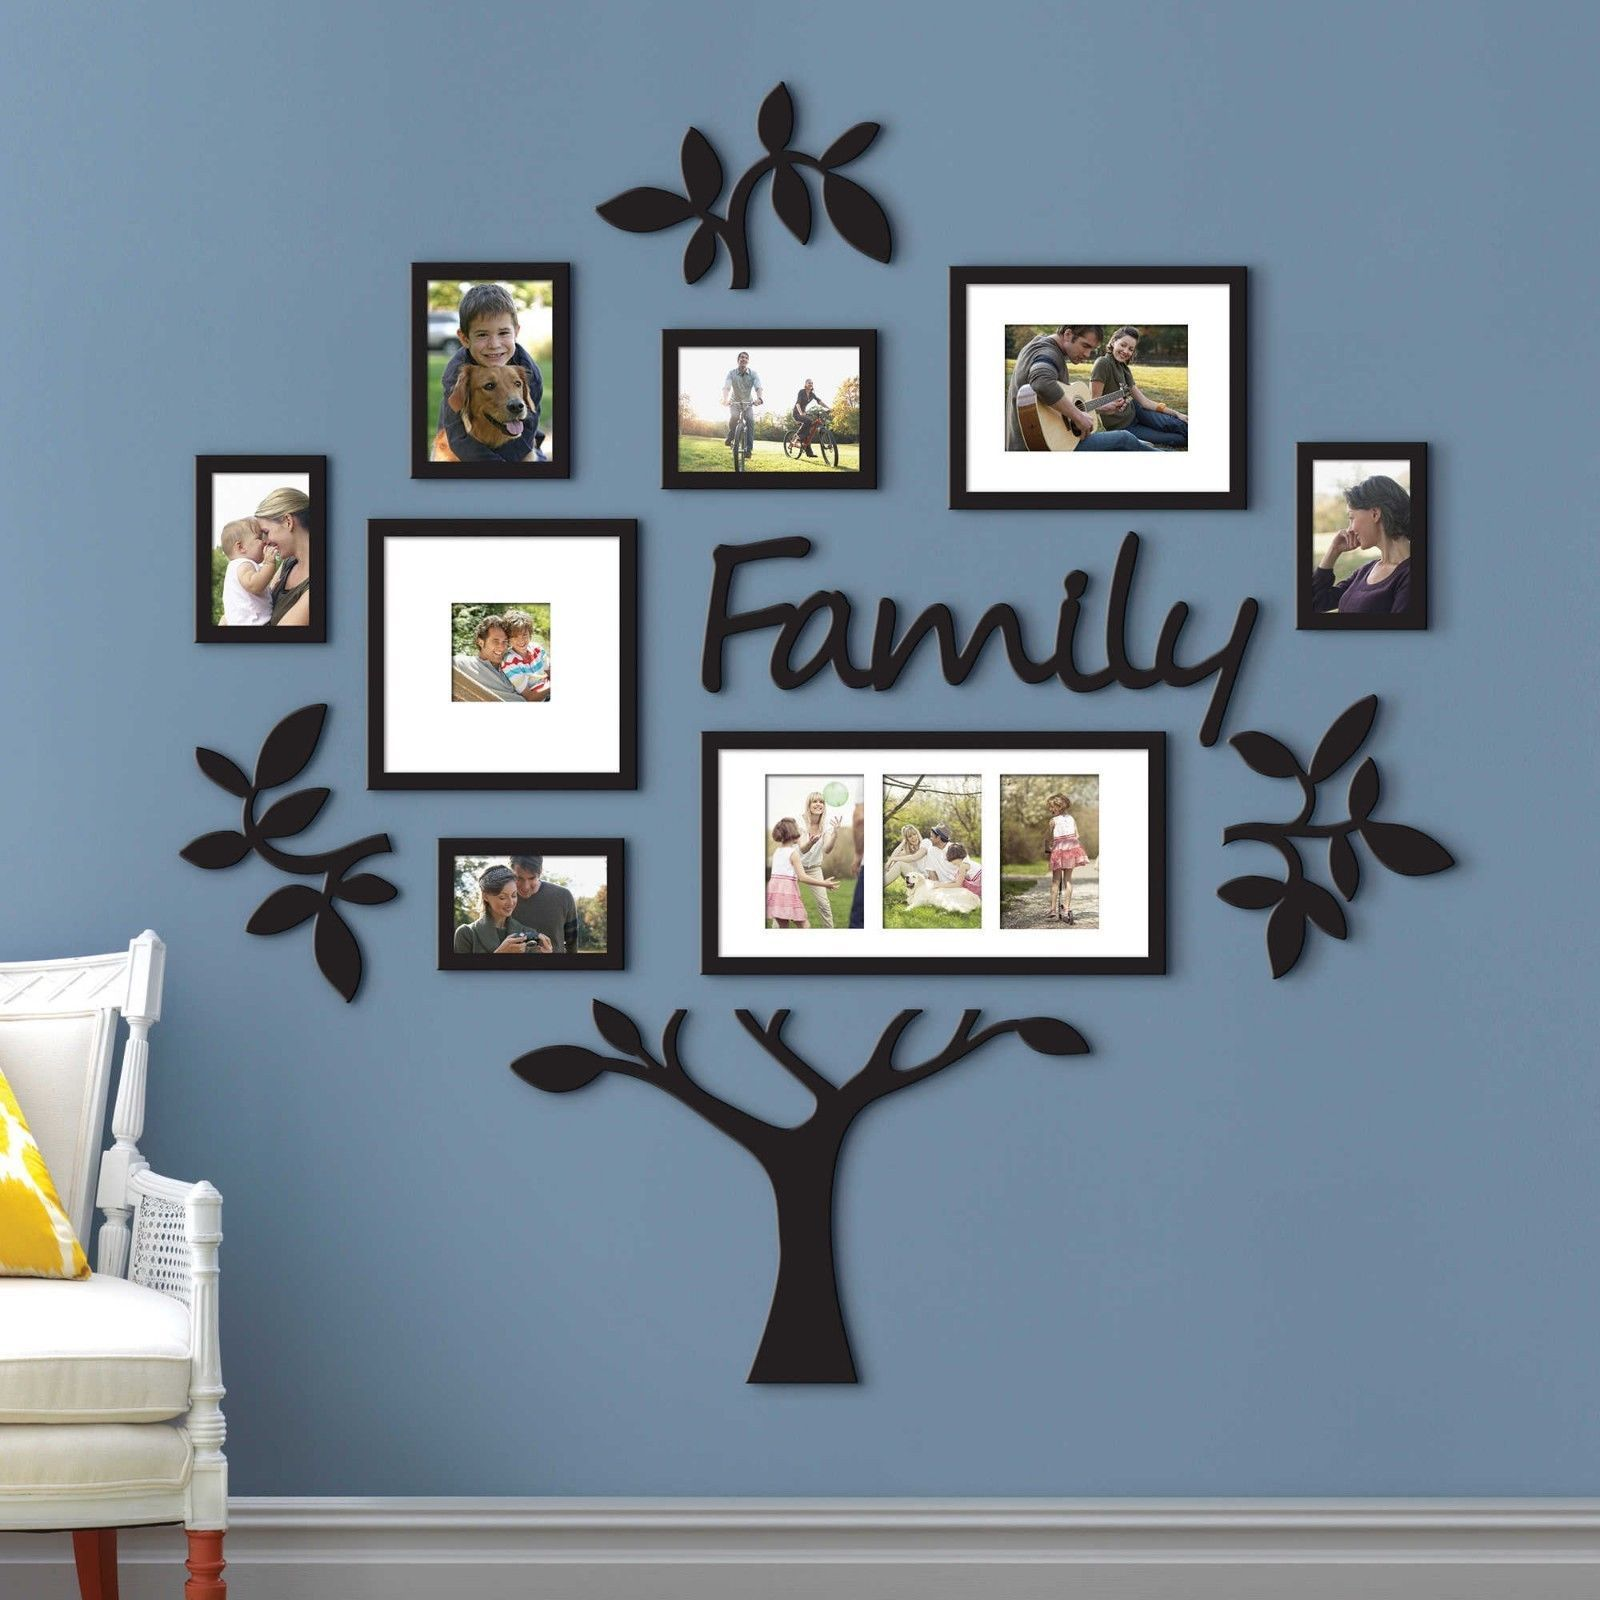 Family Tree Frame Collage Pictures Photo Frame Collage Photo Wall Mount Decor Wedding images